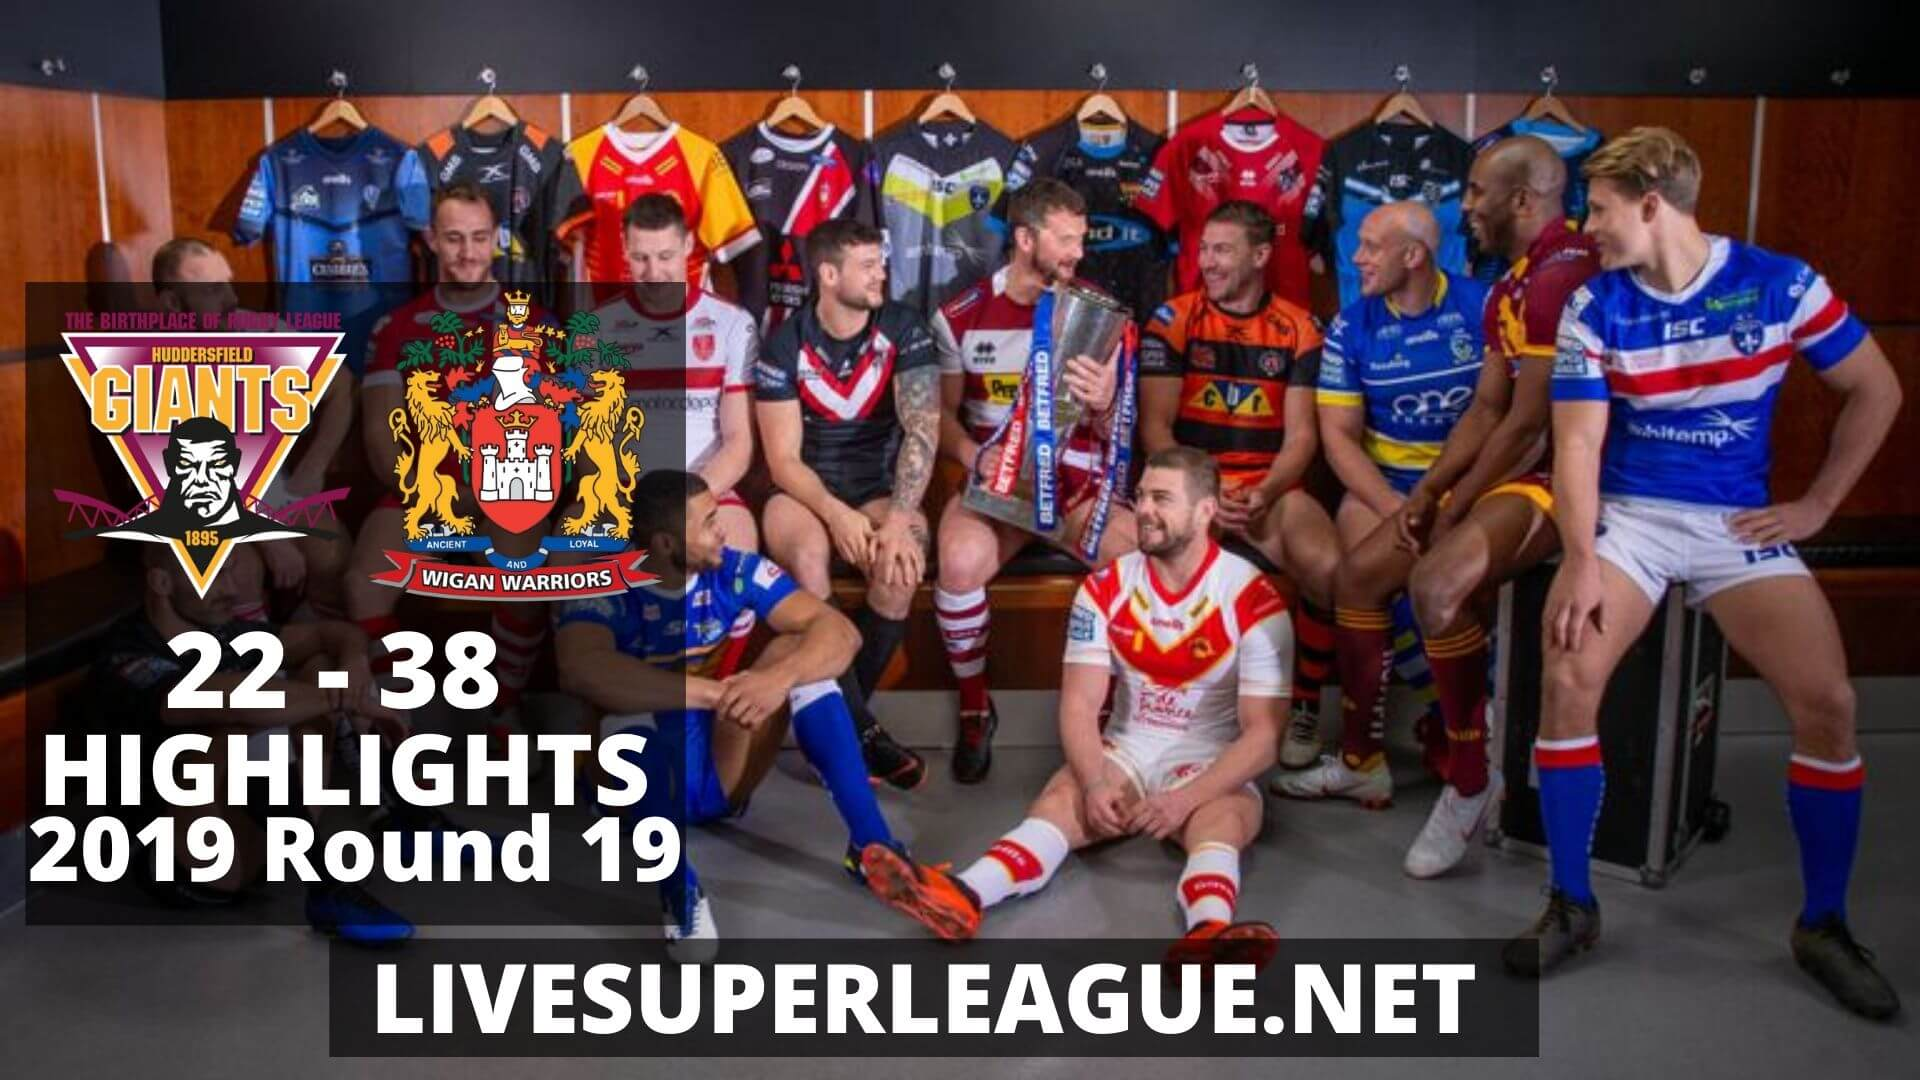 Huddersfield Giants Vs Wigan Warriors Highlights 2019 Round 19